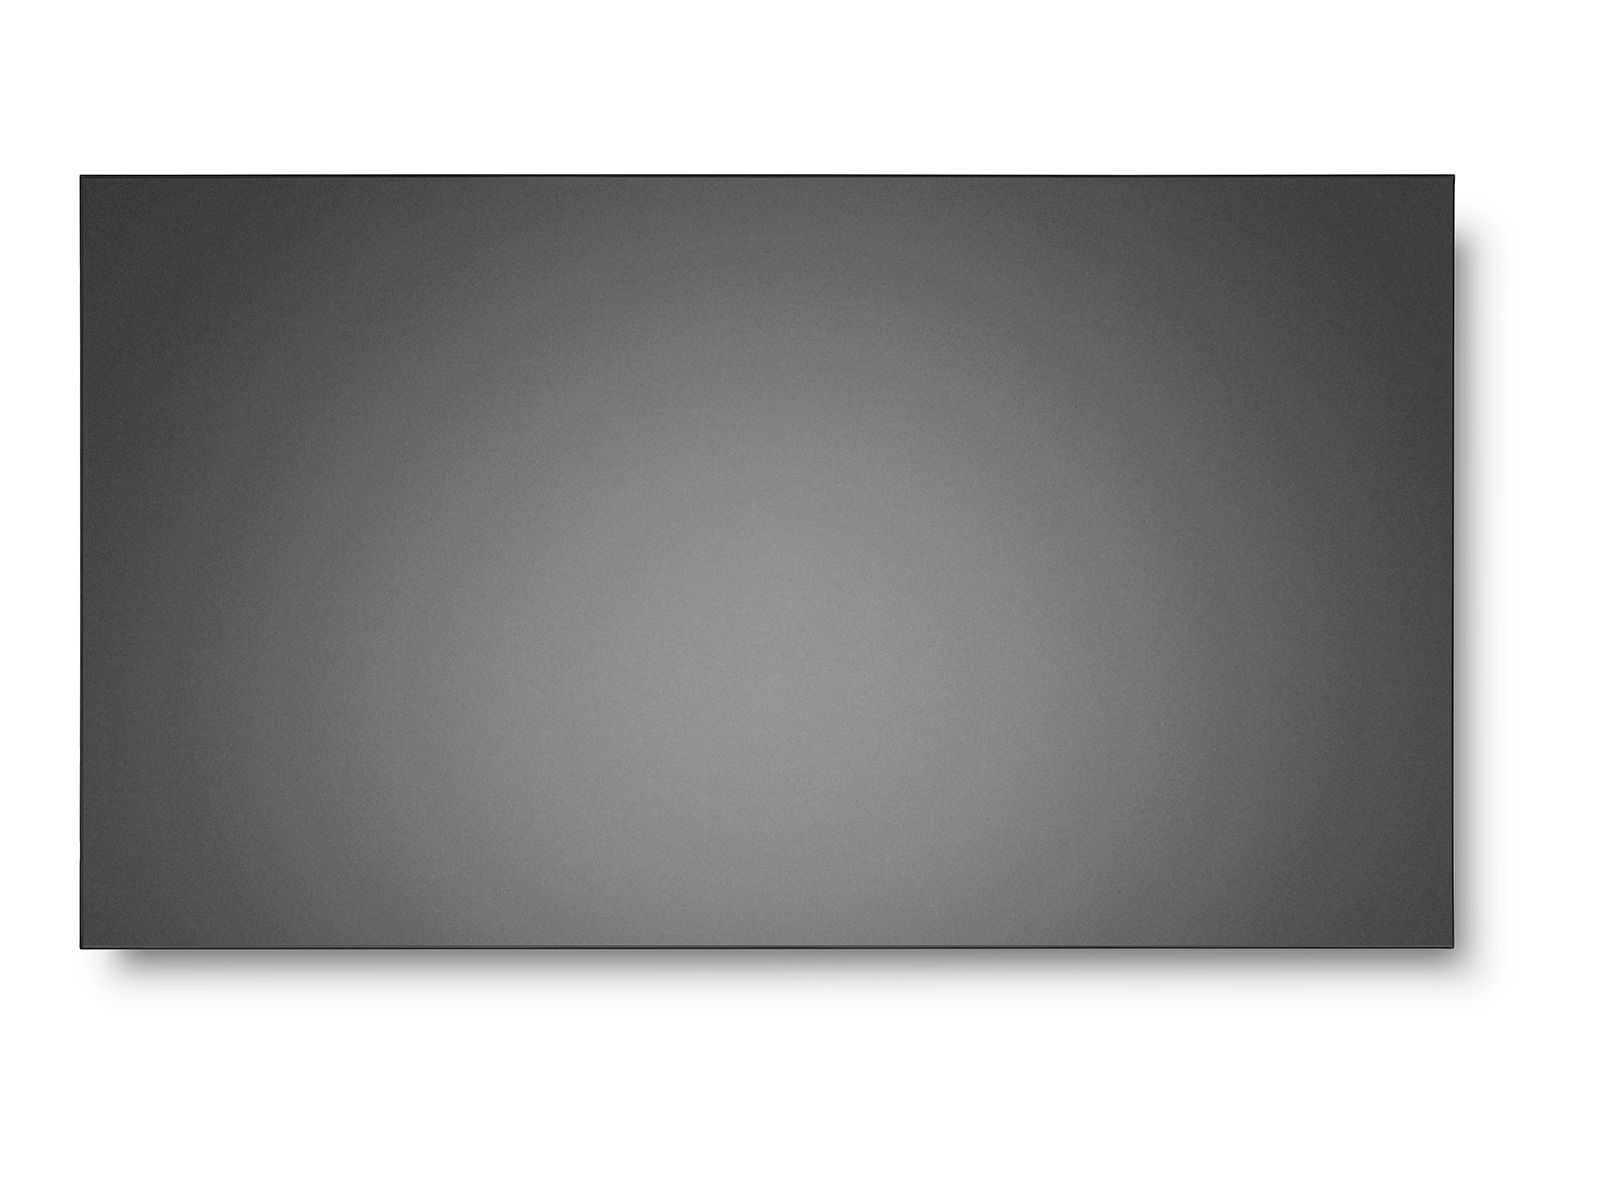 Televisions & Recorders UN552A 55in LED FHD Videowall Display